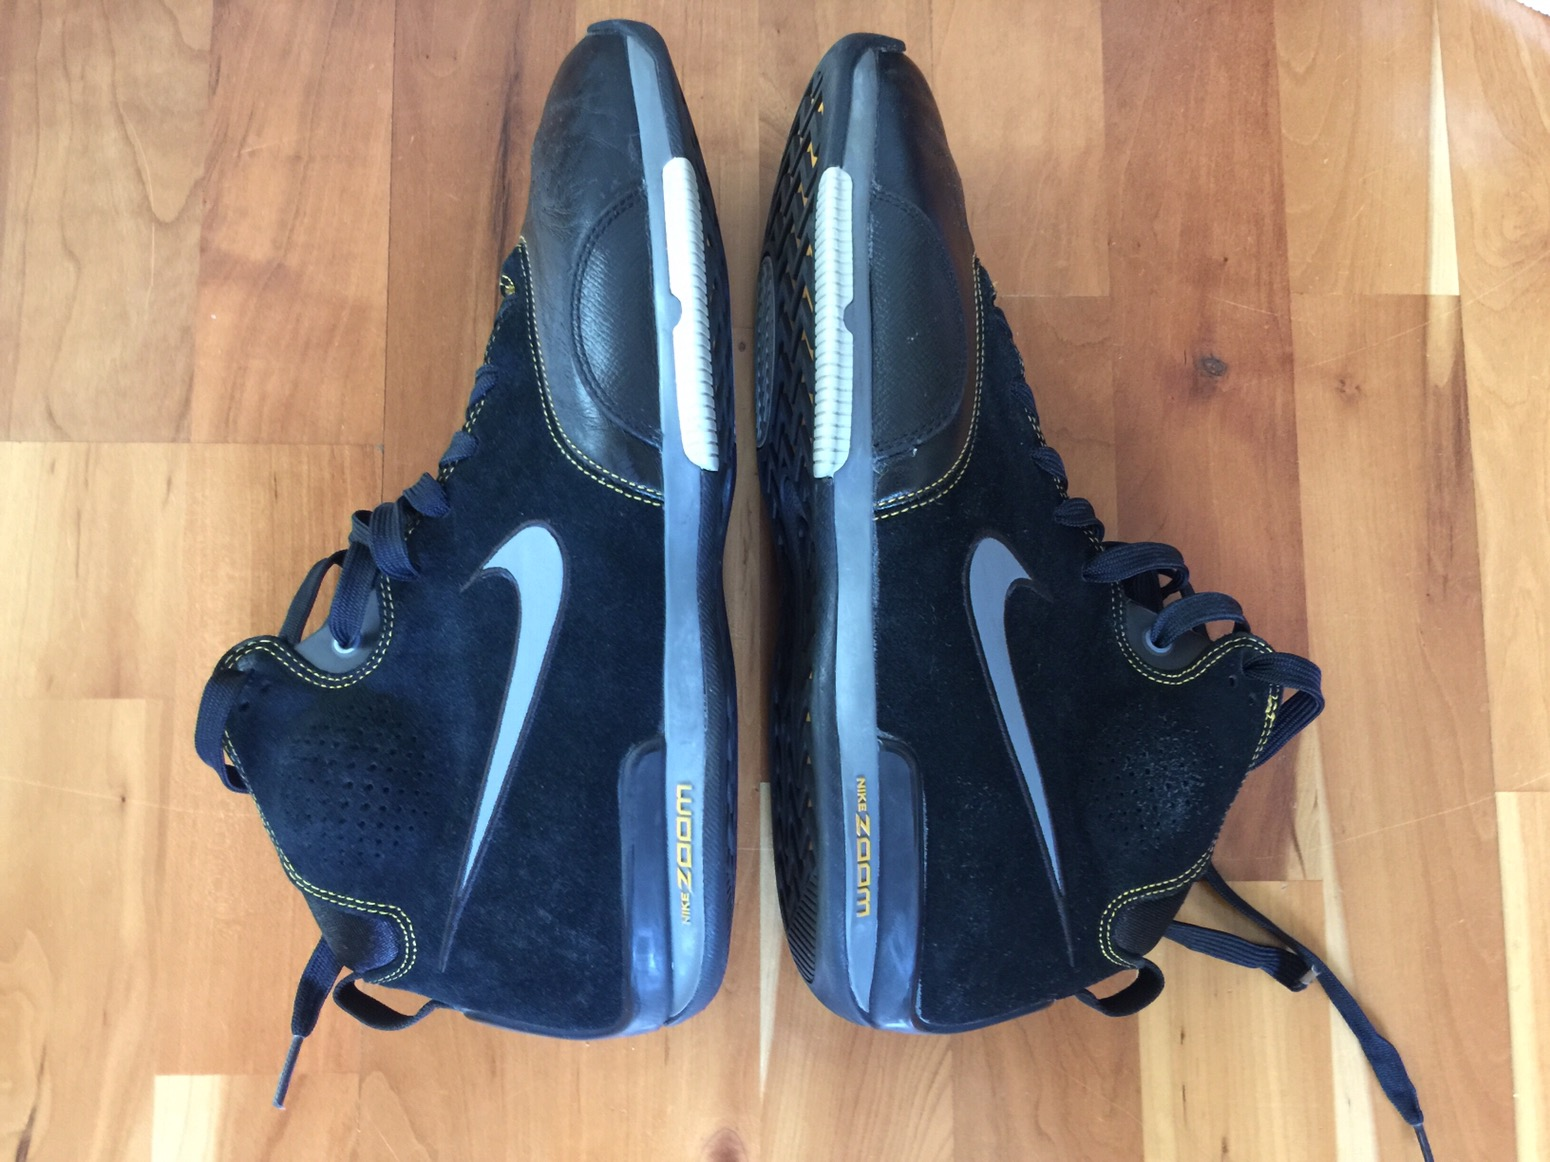 31ec69e124e8 The Zoom BB came out in 2007 when Steve Nash was near the peak of his  powers and the BB was getting some serious team shoe time. Why Nike only  made three of ...